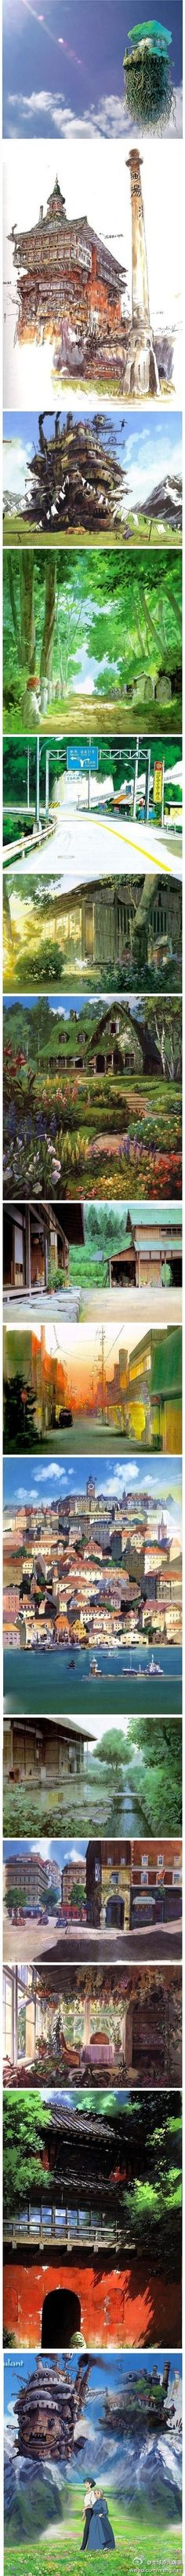 scenery in Hayao Miyazaki films. The illustration in these is wonderful-so much atmosphere!